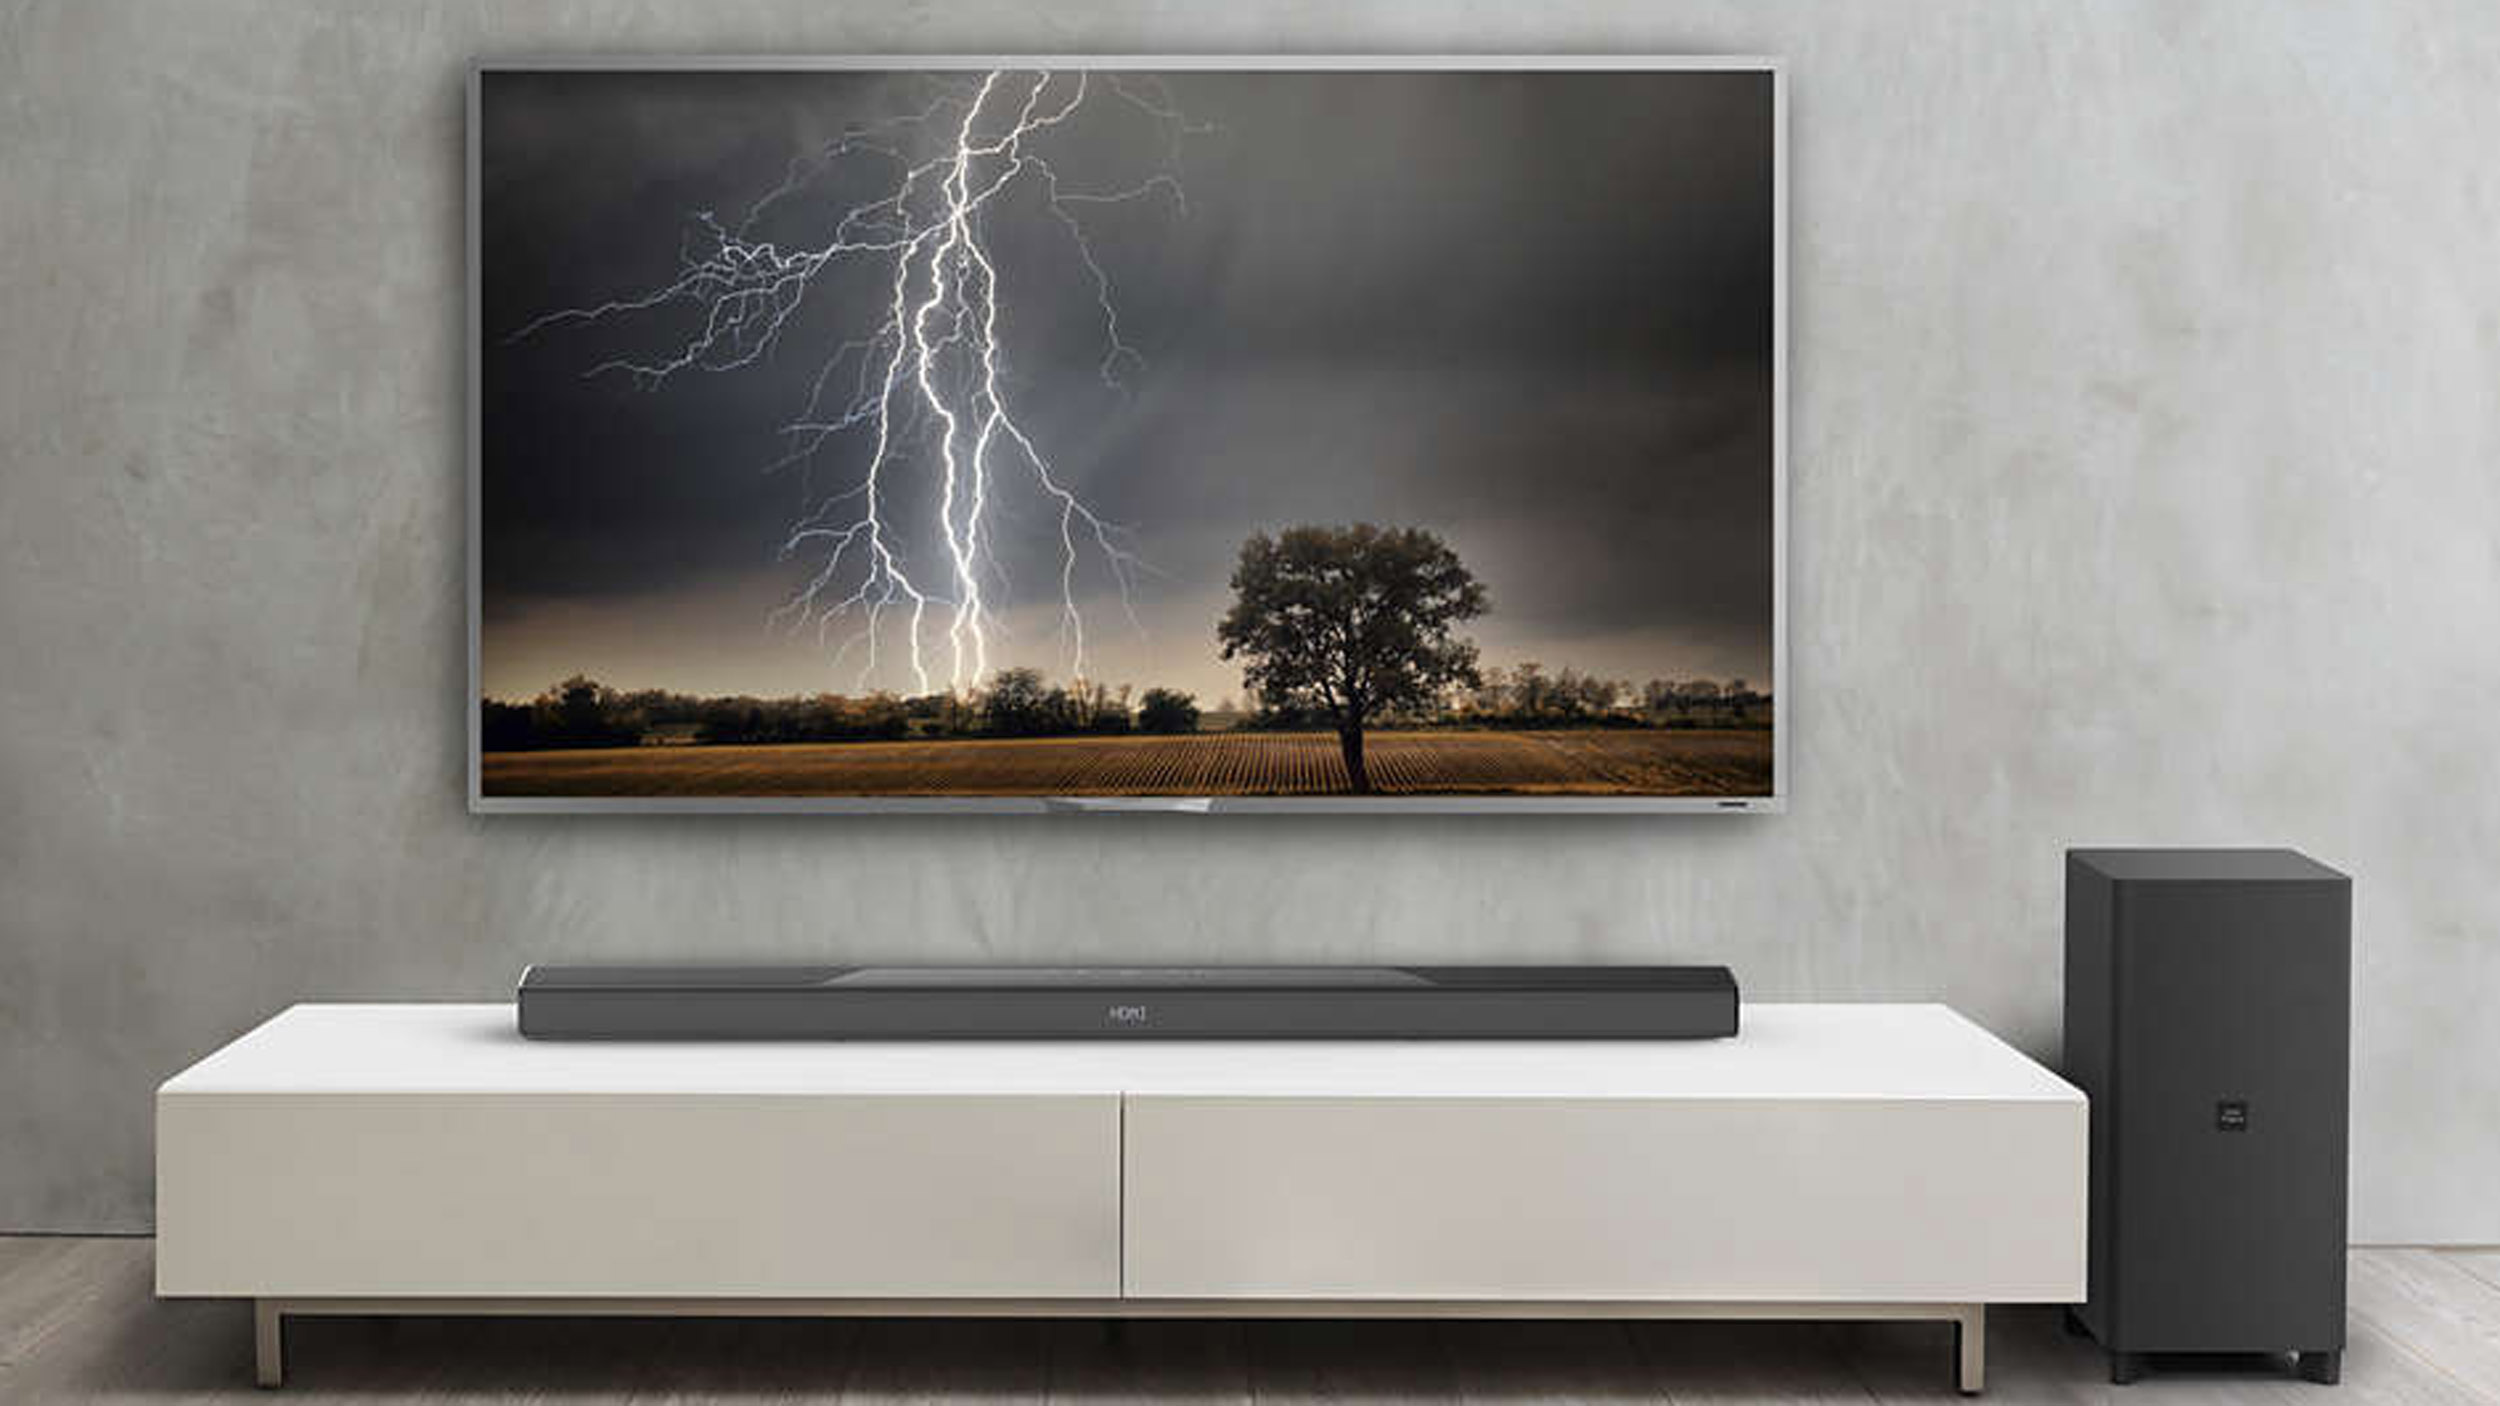 Philips Fidelio B8 12 Skyquake Review An Atmos Soundbar